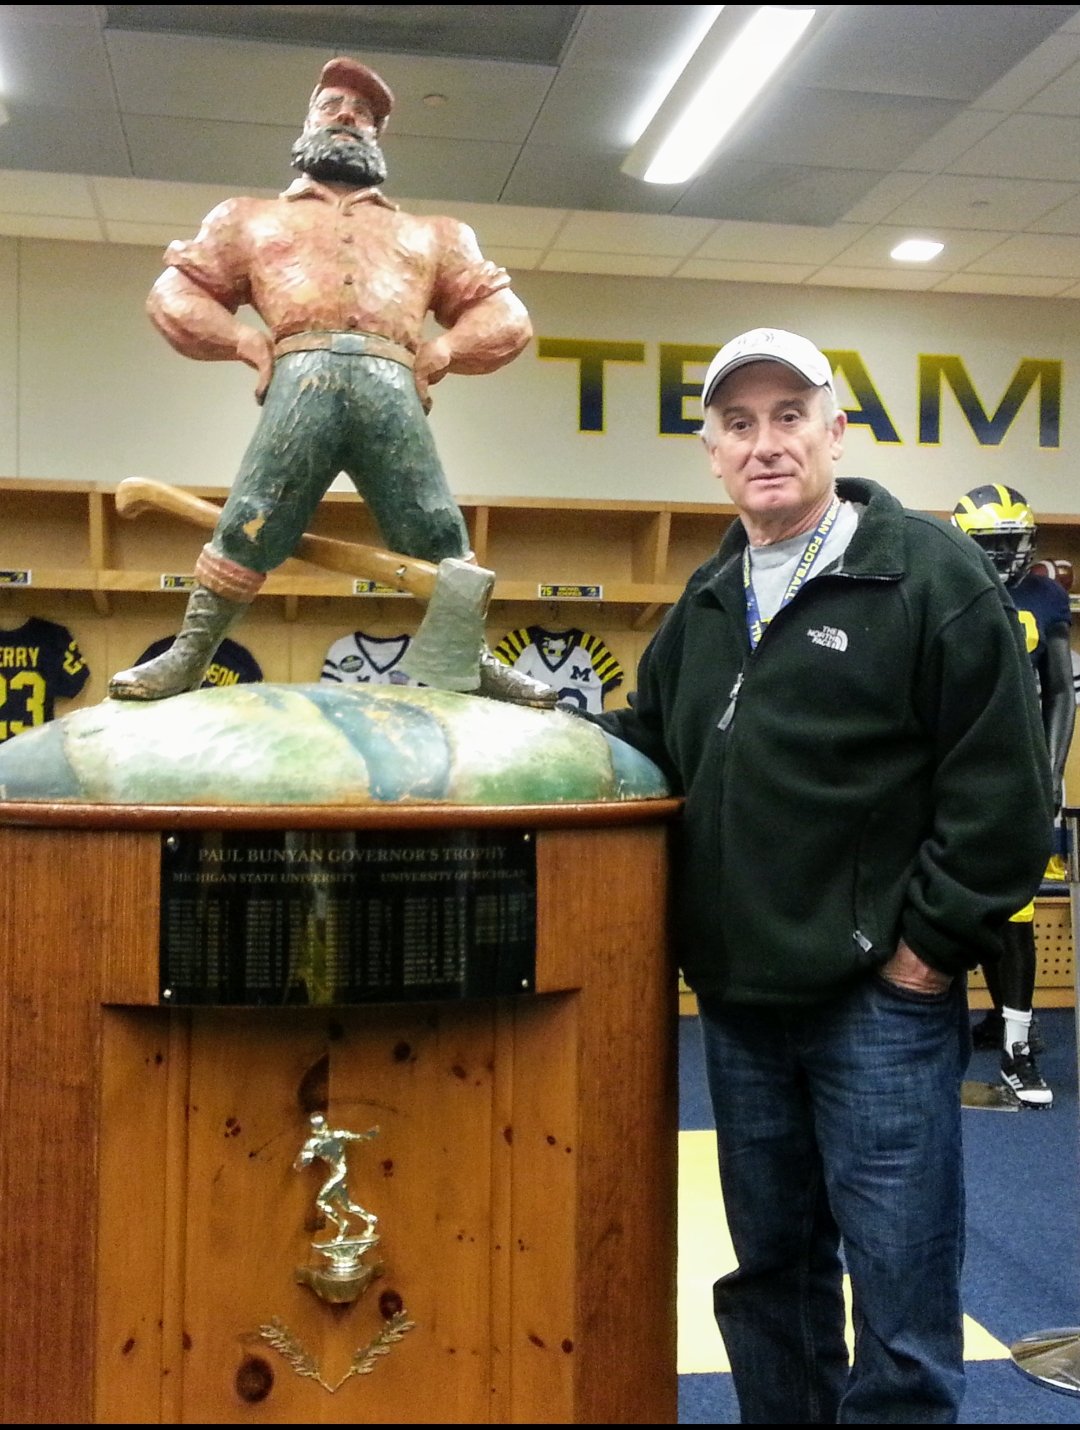 Kevin Kyes (MaizeMan) in the locker room at Michigan with Paul Bunyan trophy